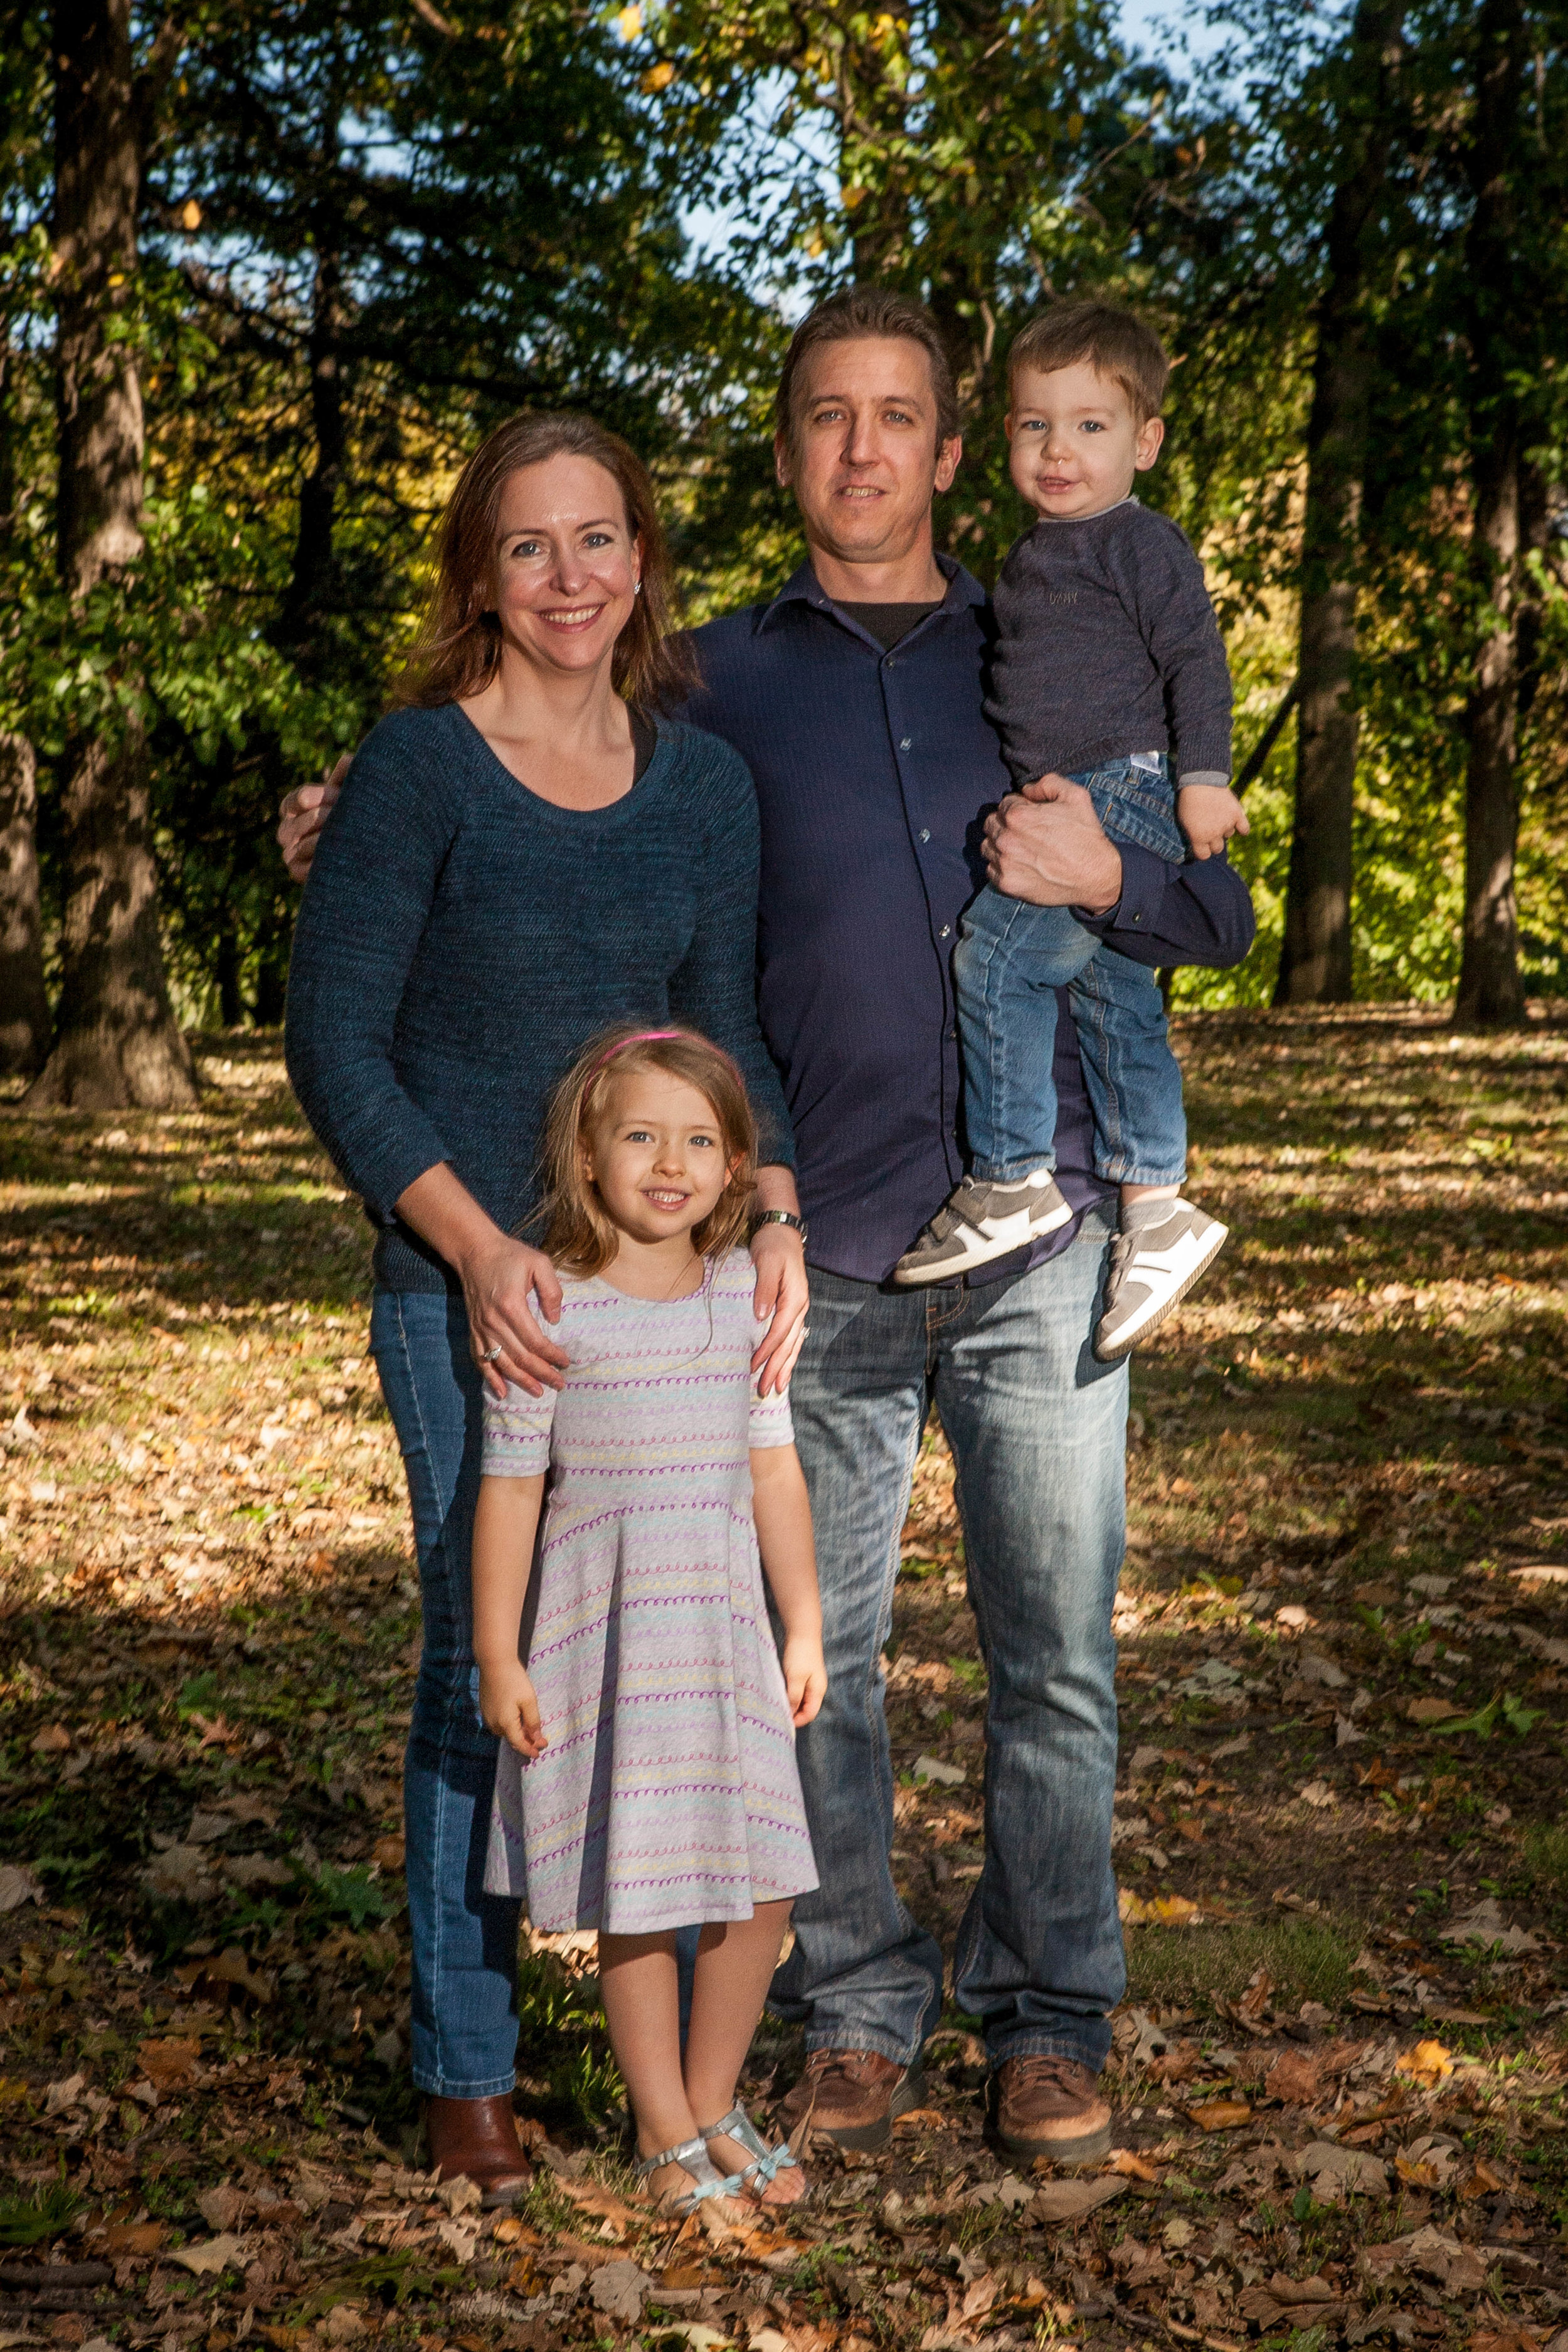 Chicago outdoor family photographer